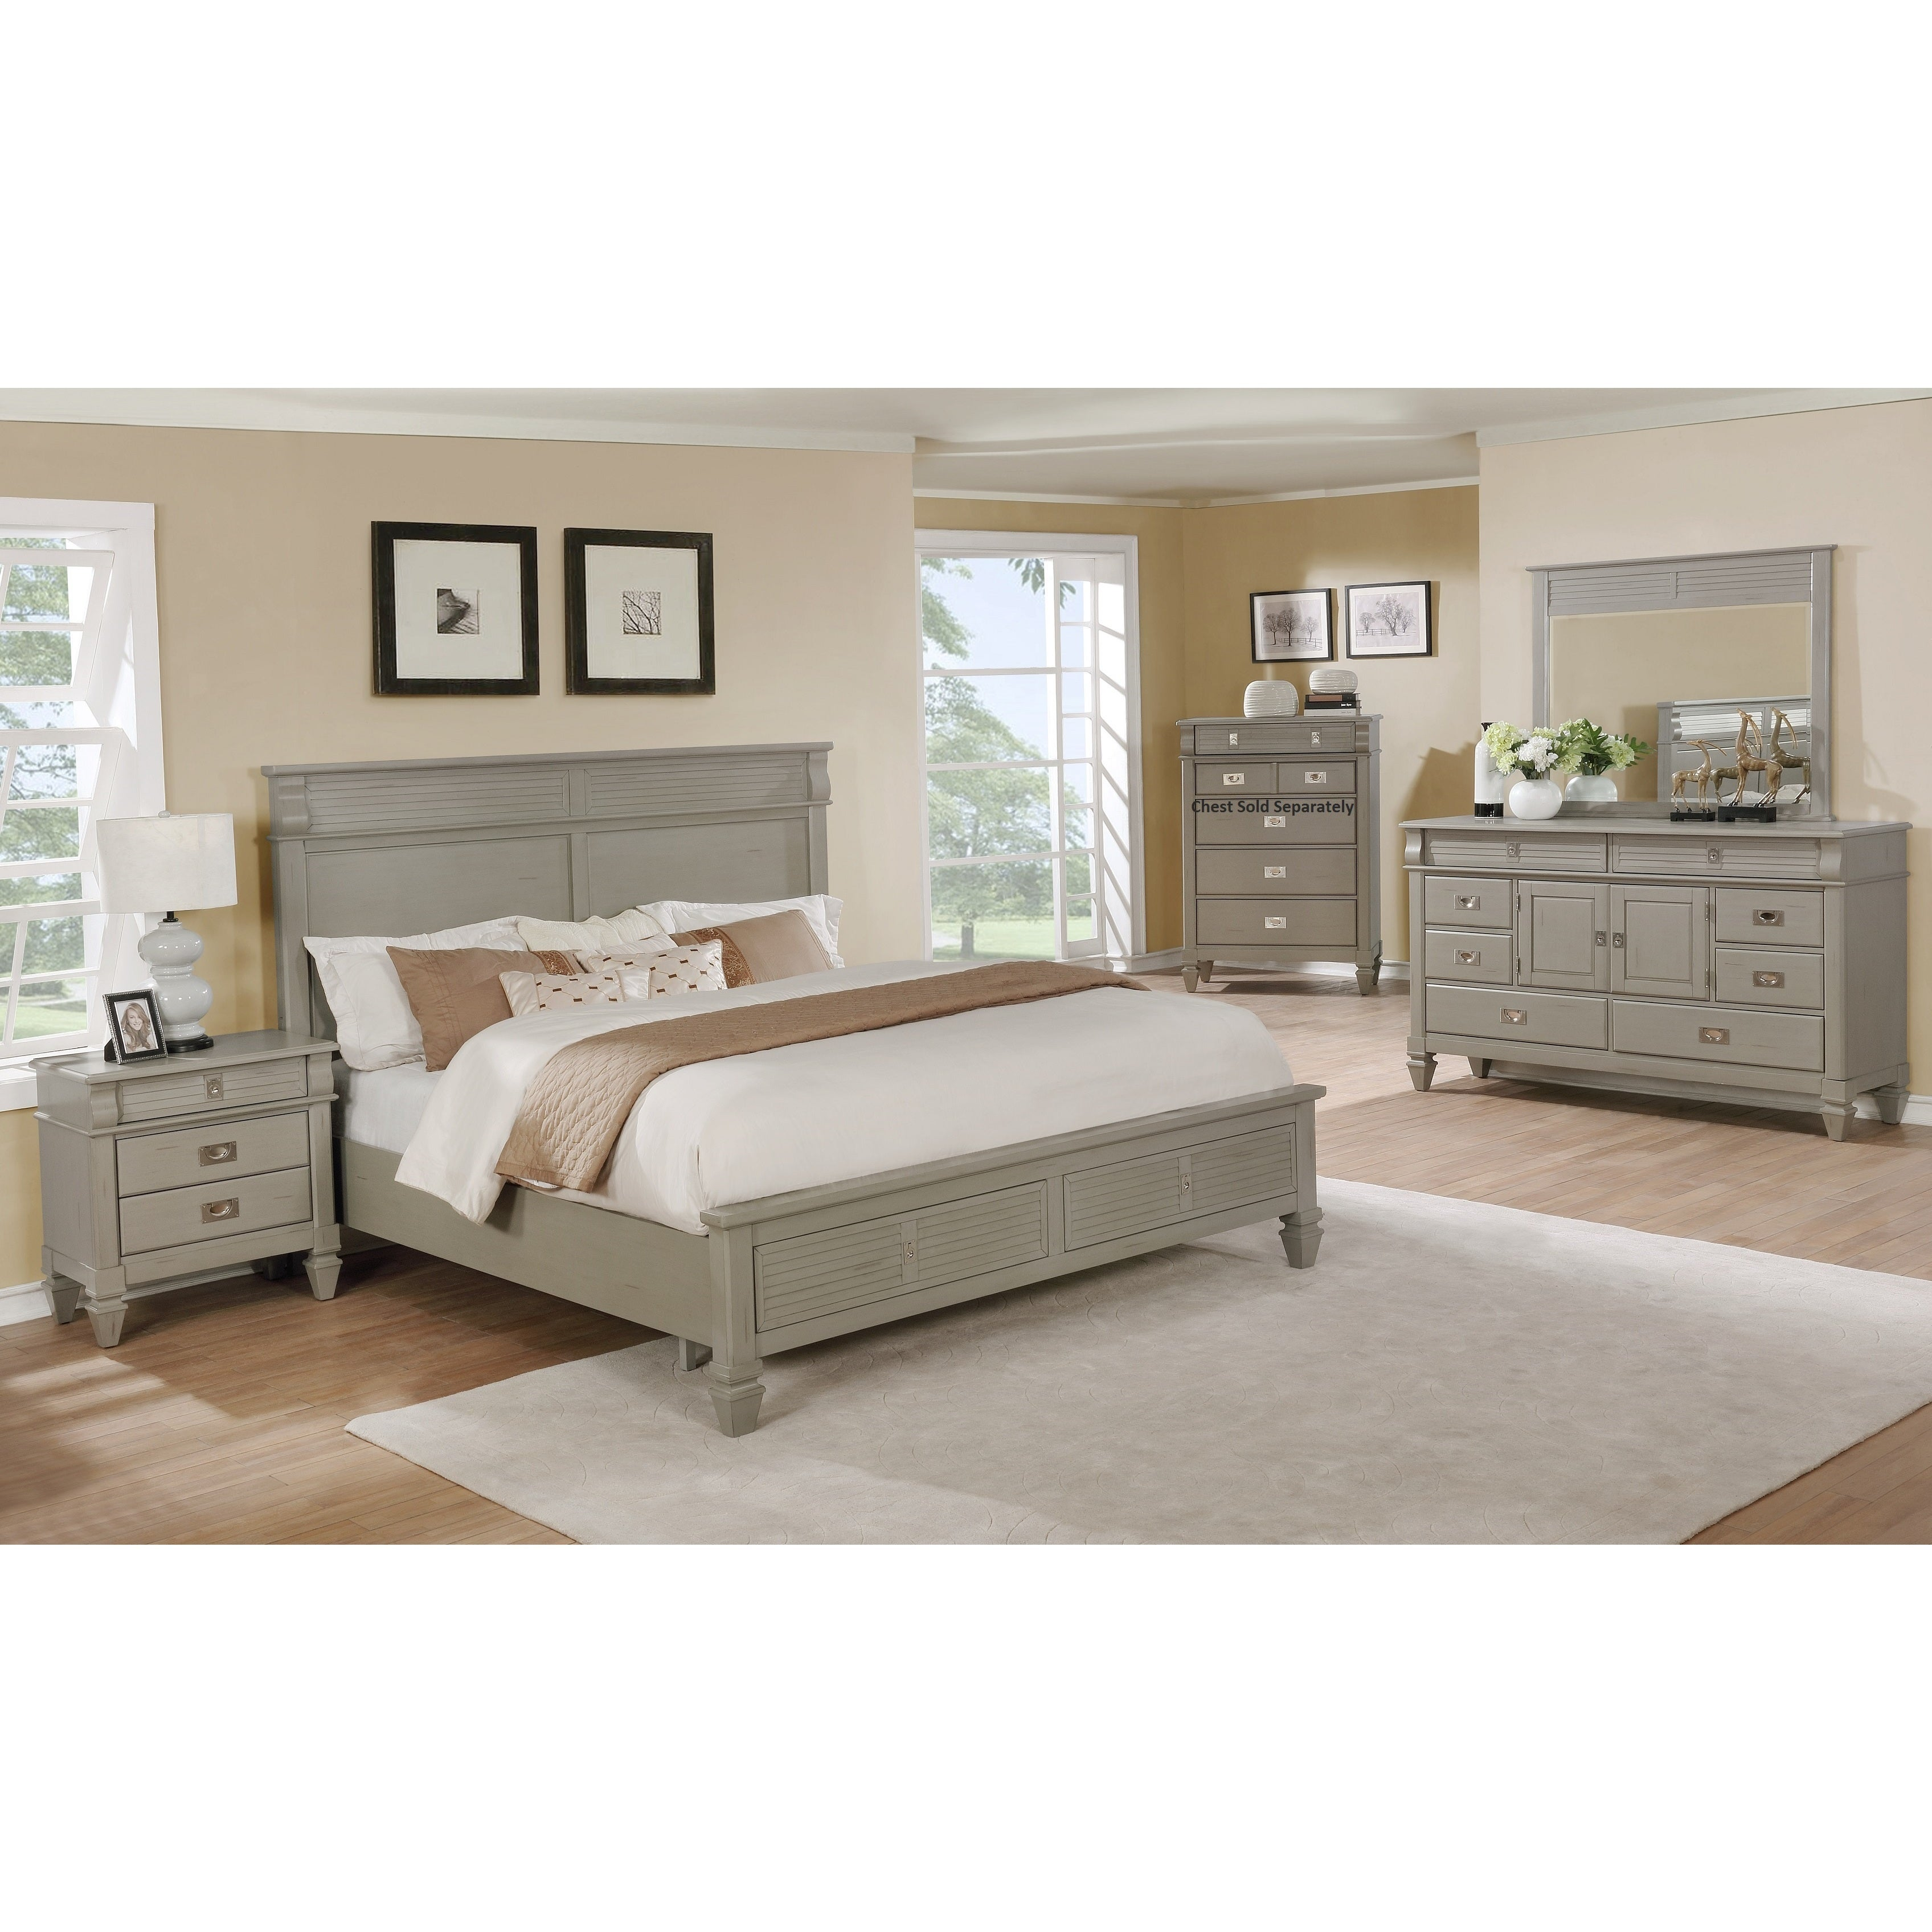 The Gray Barn Barish Solid Wood Construction Bedroom Set with Queen size  Bed, Dresser, Mirror and Nightstand